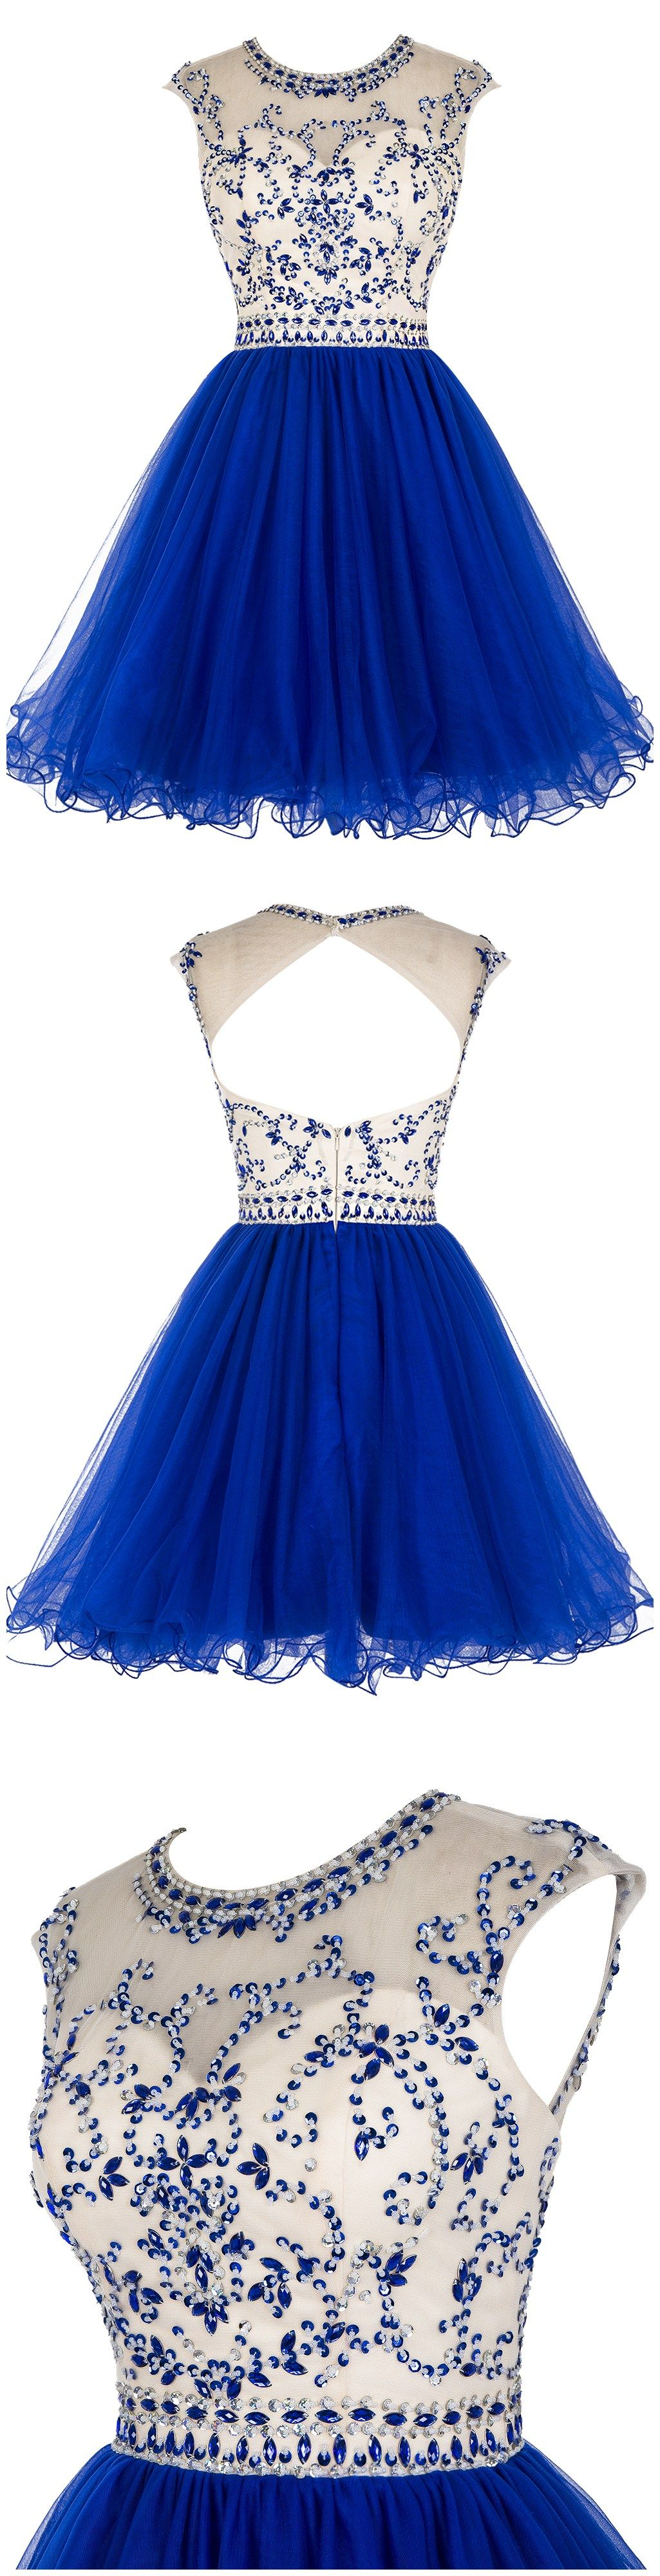 Homecoming Dress Royal Bluehomecoming Dresses For Juniorsshort